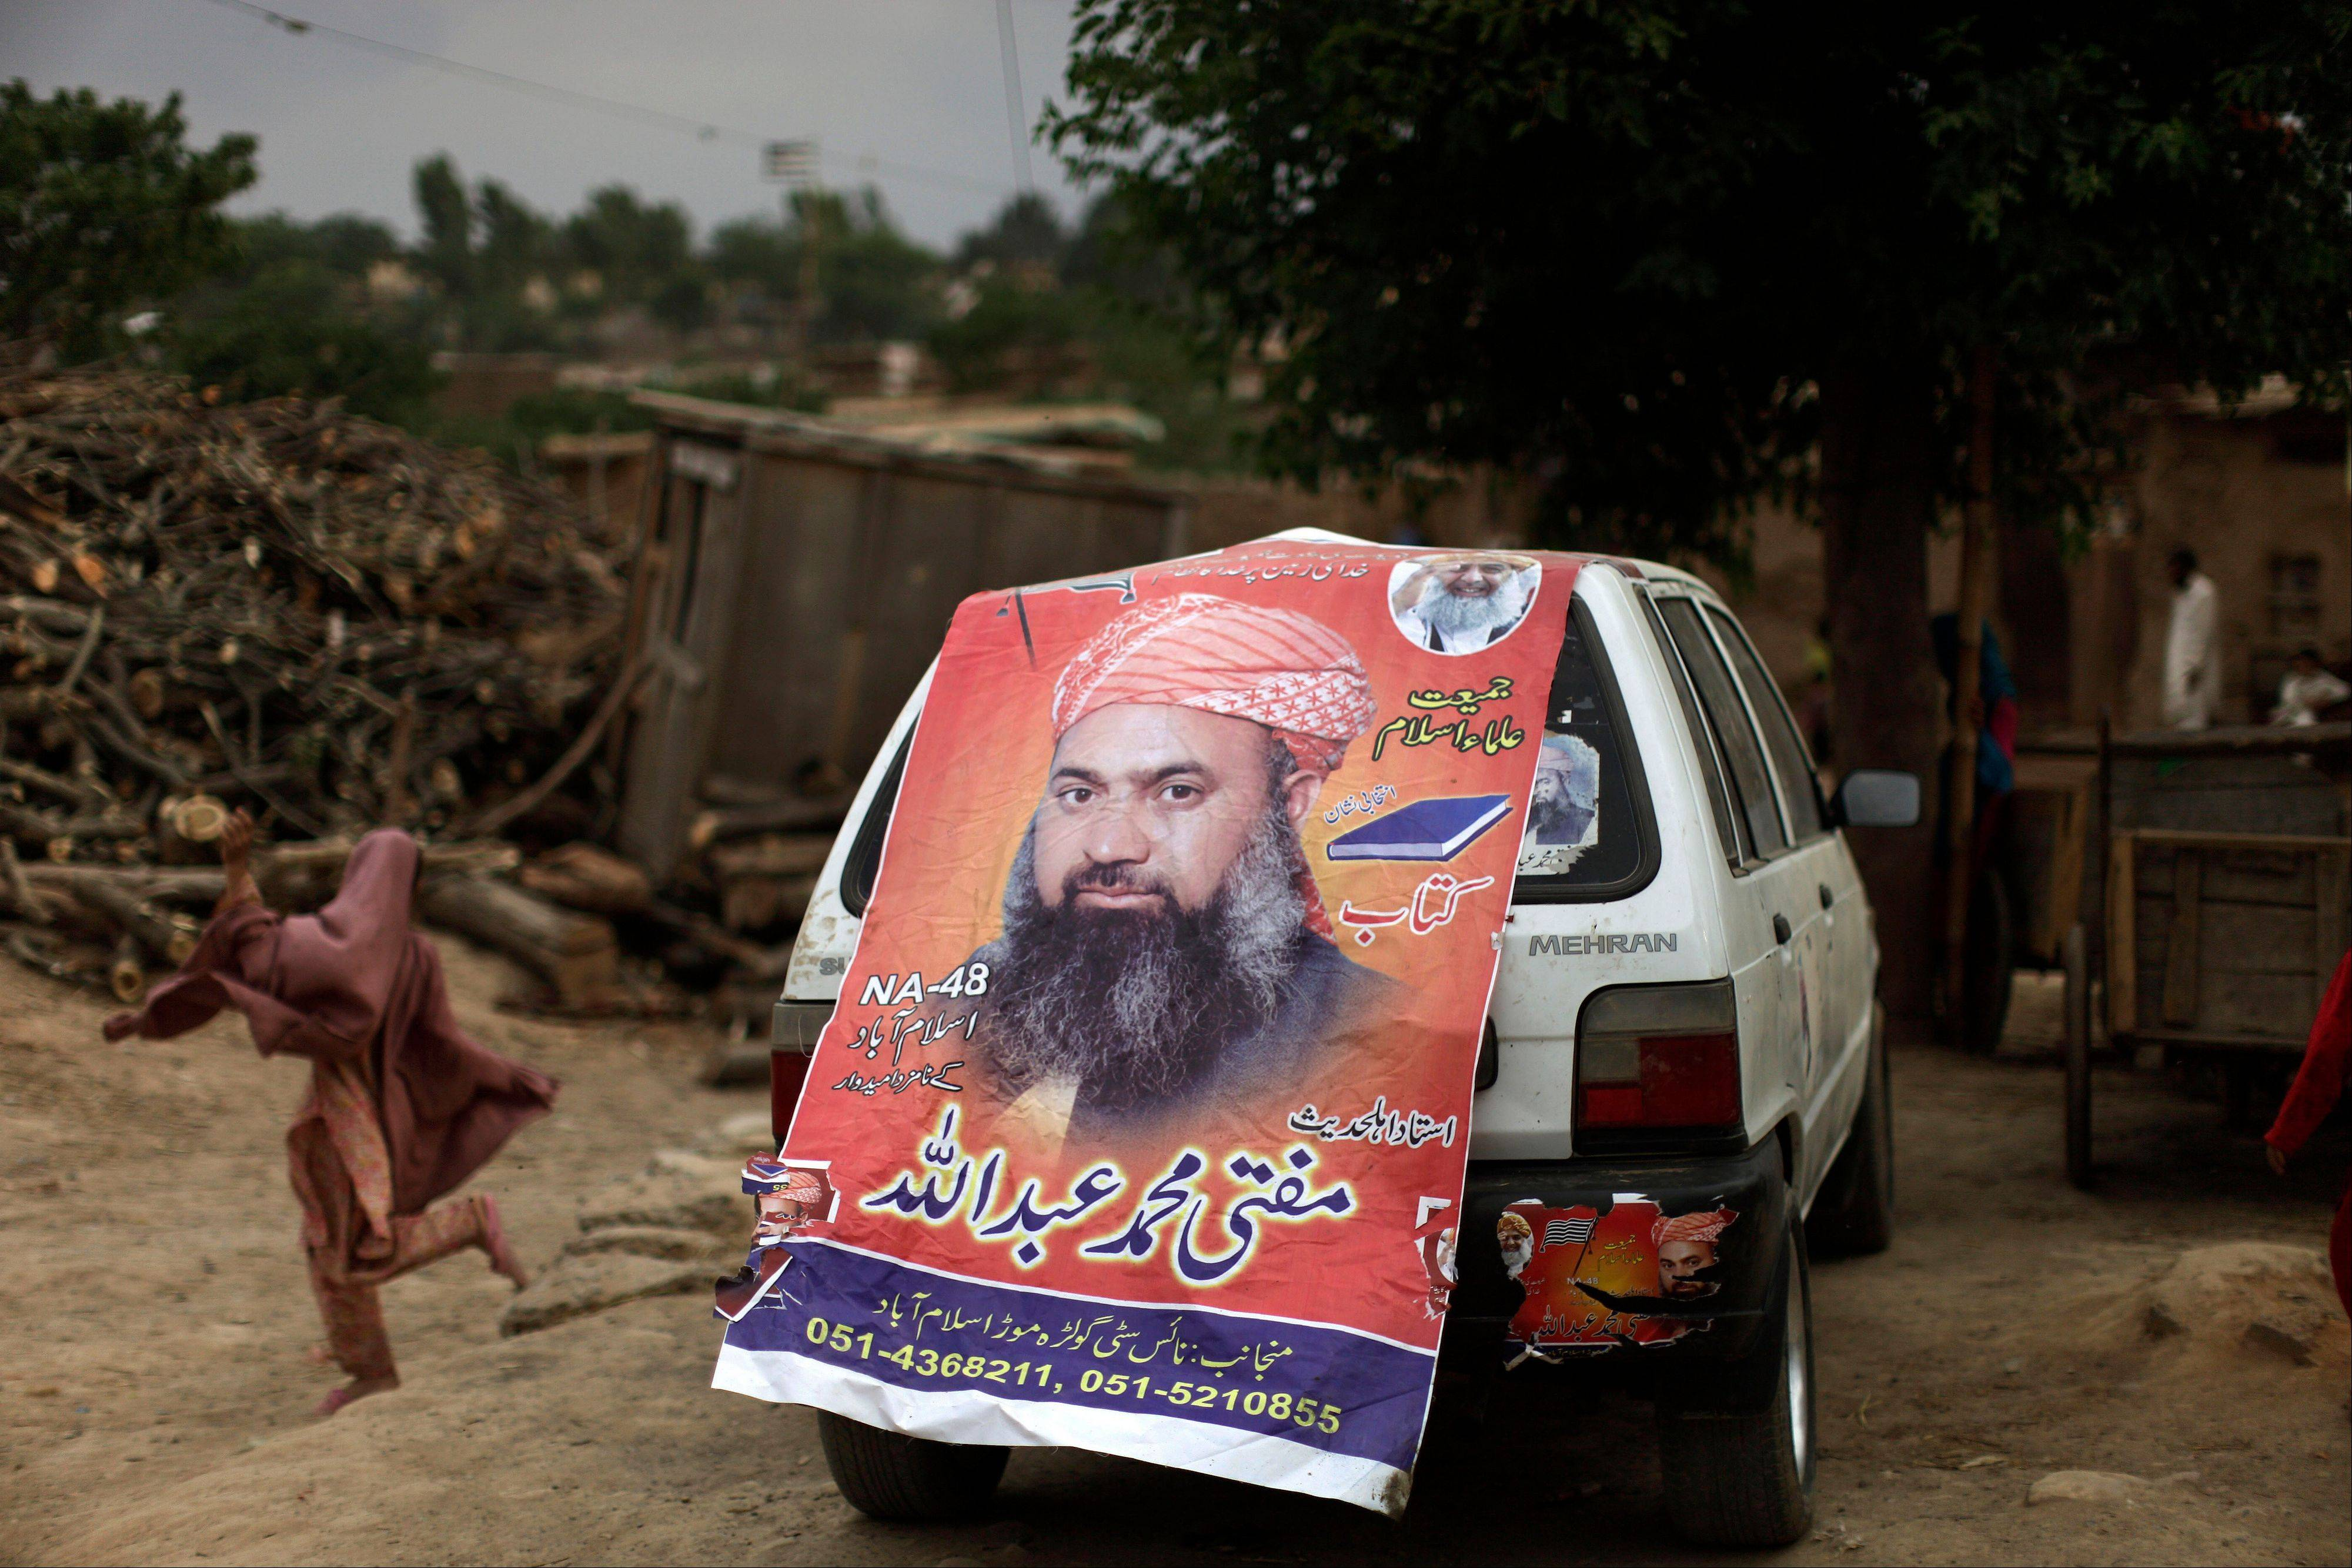 A Pakistani girl runs past a car Friday decorated with an election banner showing Mohammed Abdullah, a candidate of a pro-Taliban religious group Jamiat-e-Ulema Islam in a poor neighborhood on the outskirts of Islamabad, Pakis